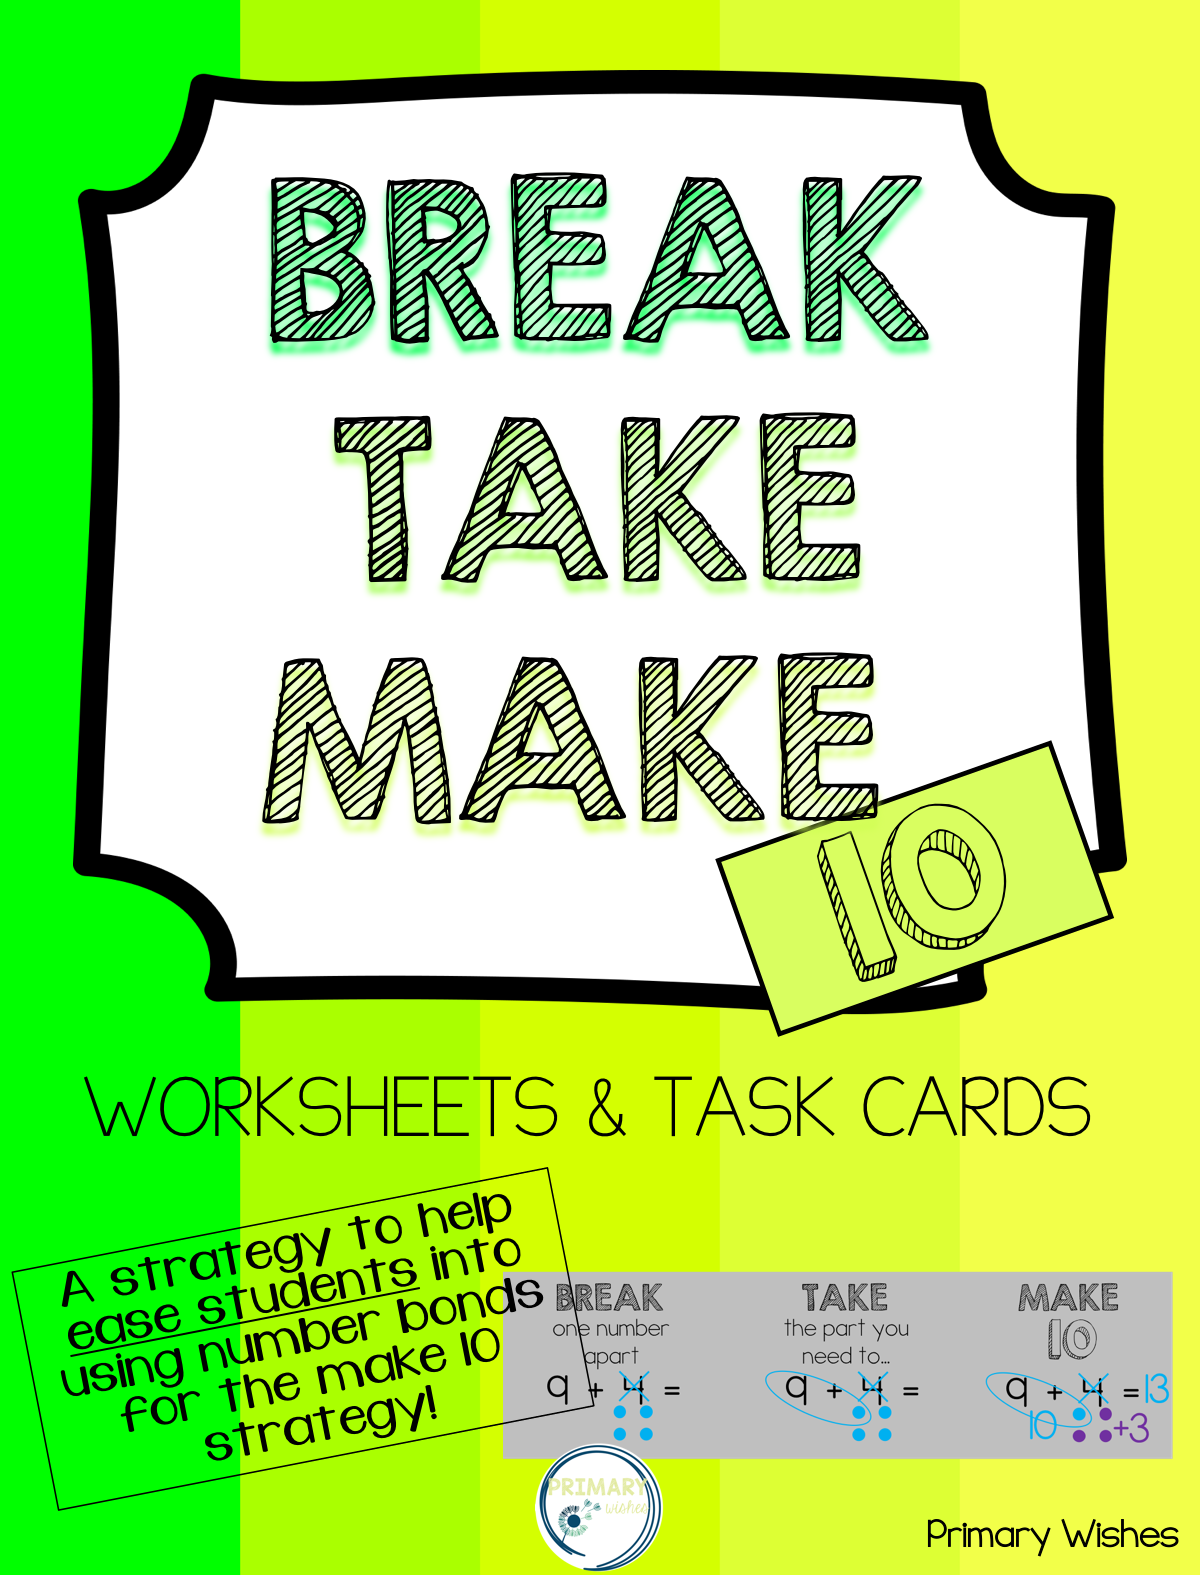 Ease Students Into The Make 10 Strategy With This Catchy